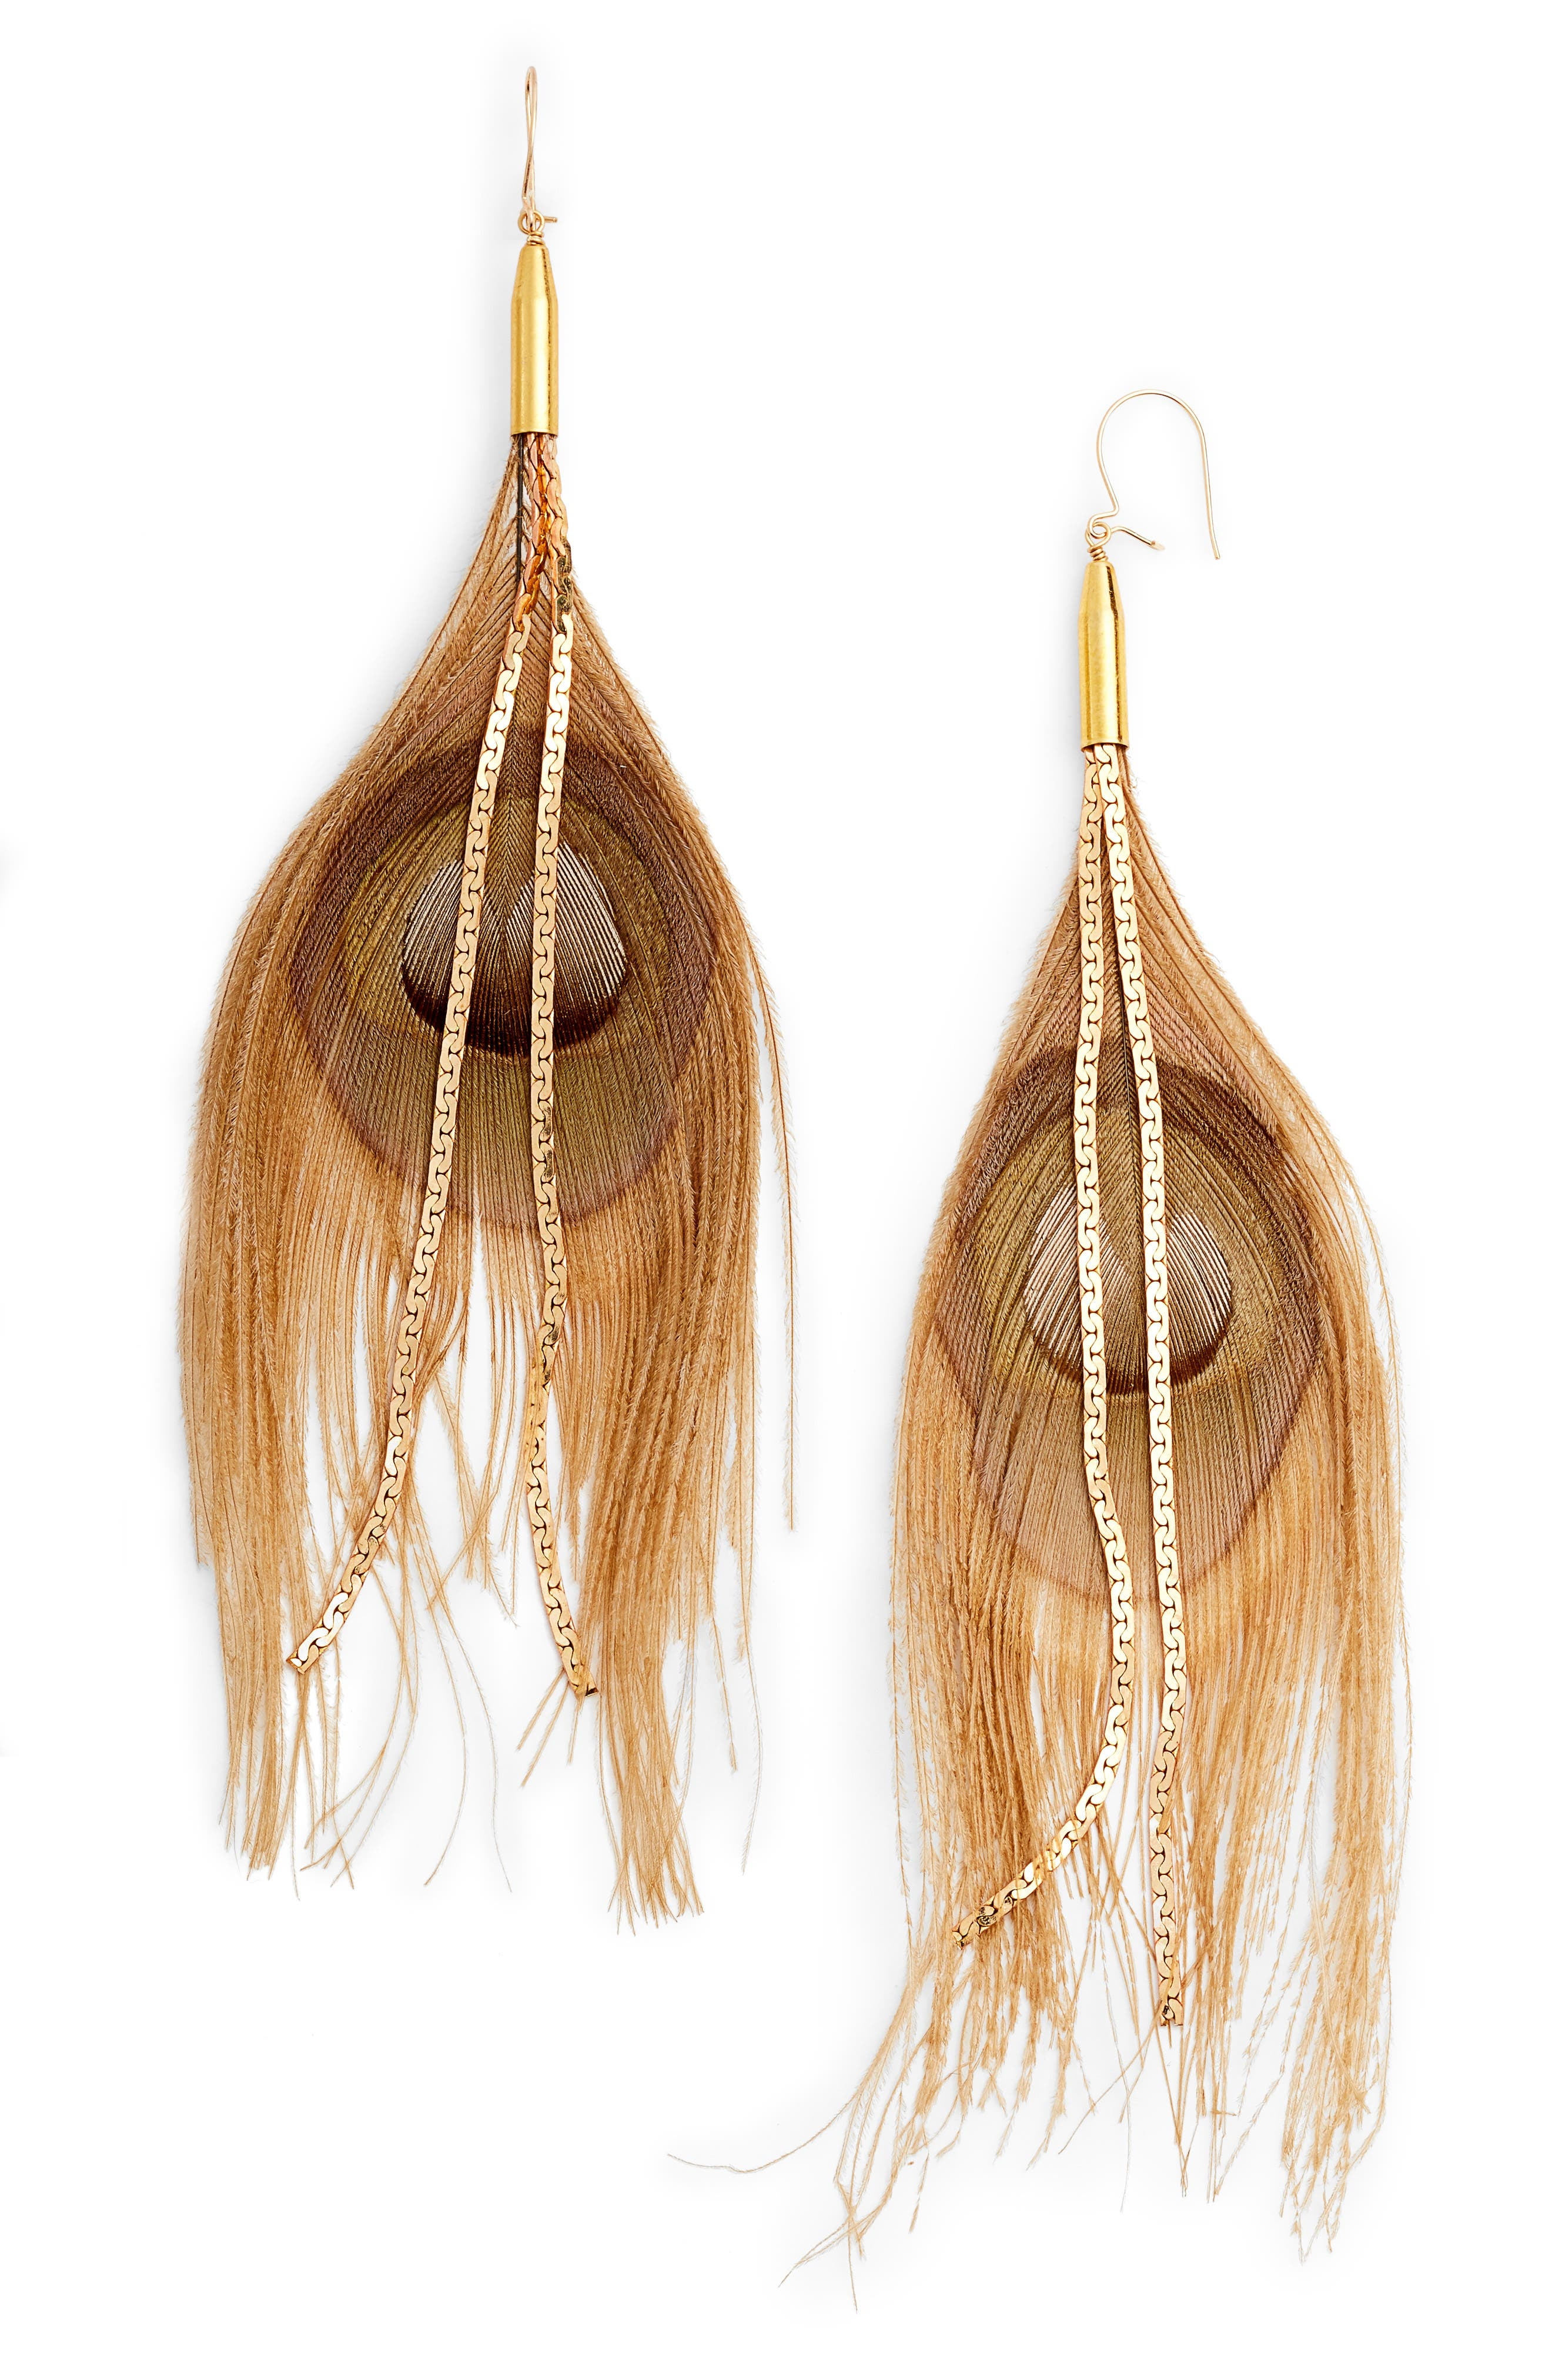 Peacock Feather Earrings,                         Main,                         color, Beige